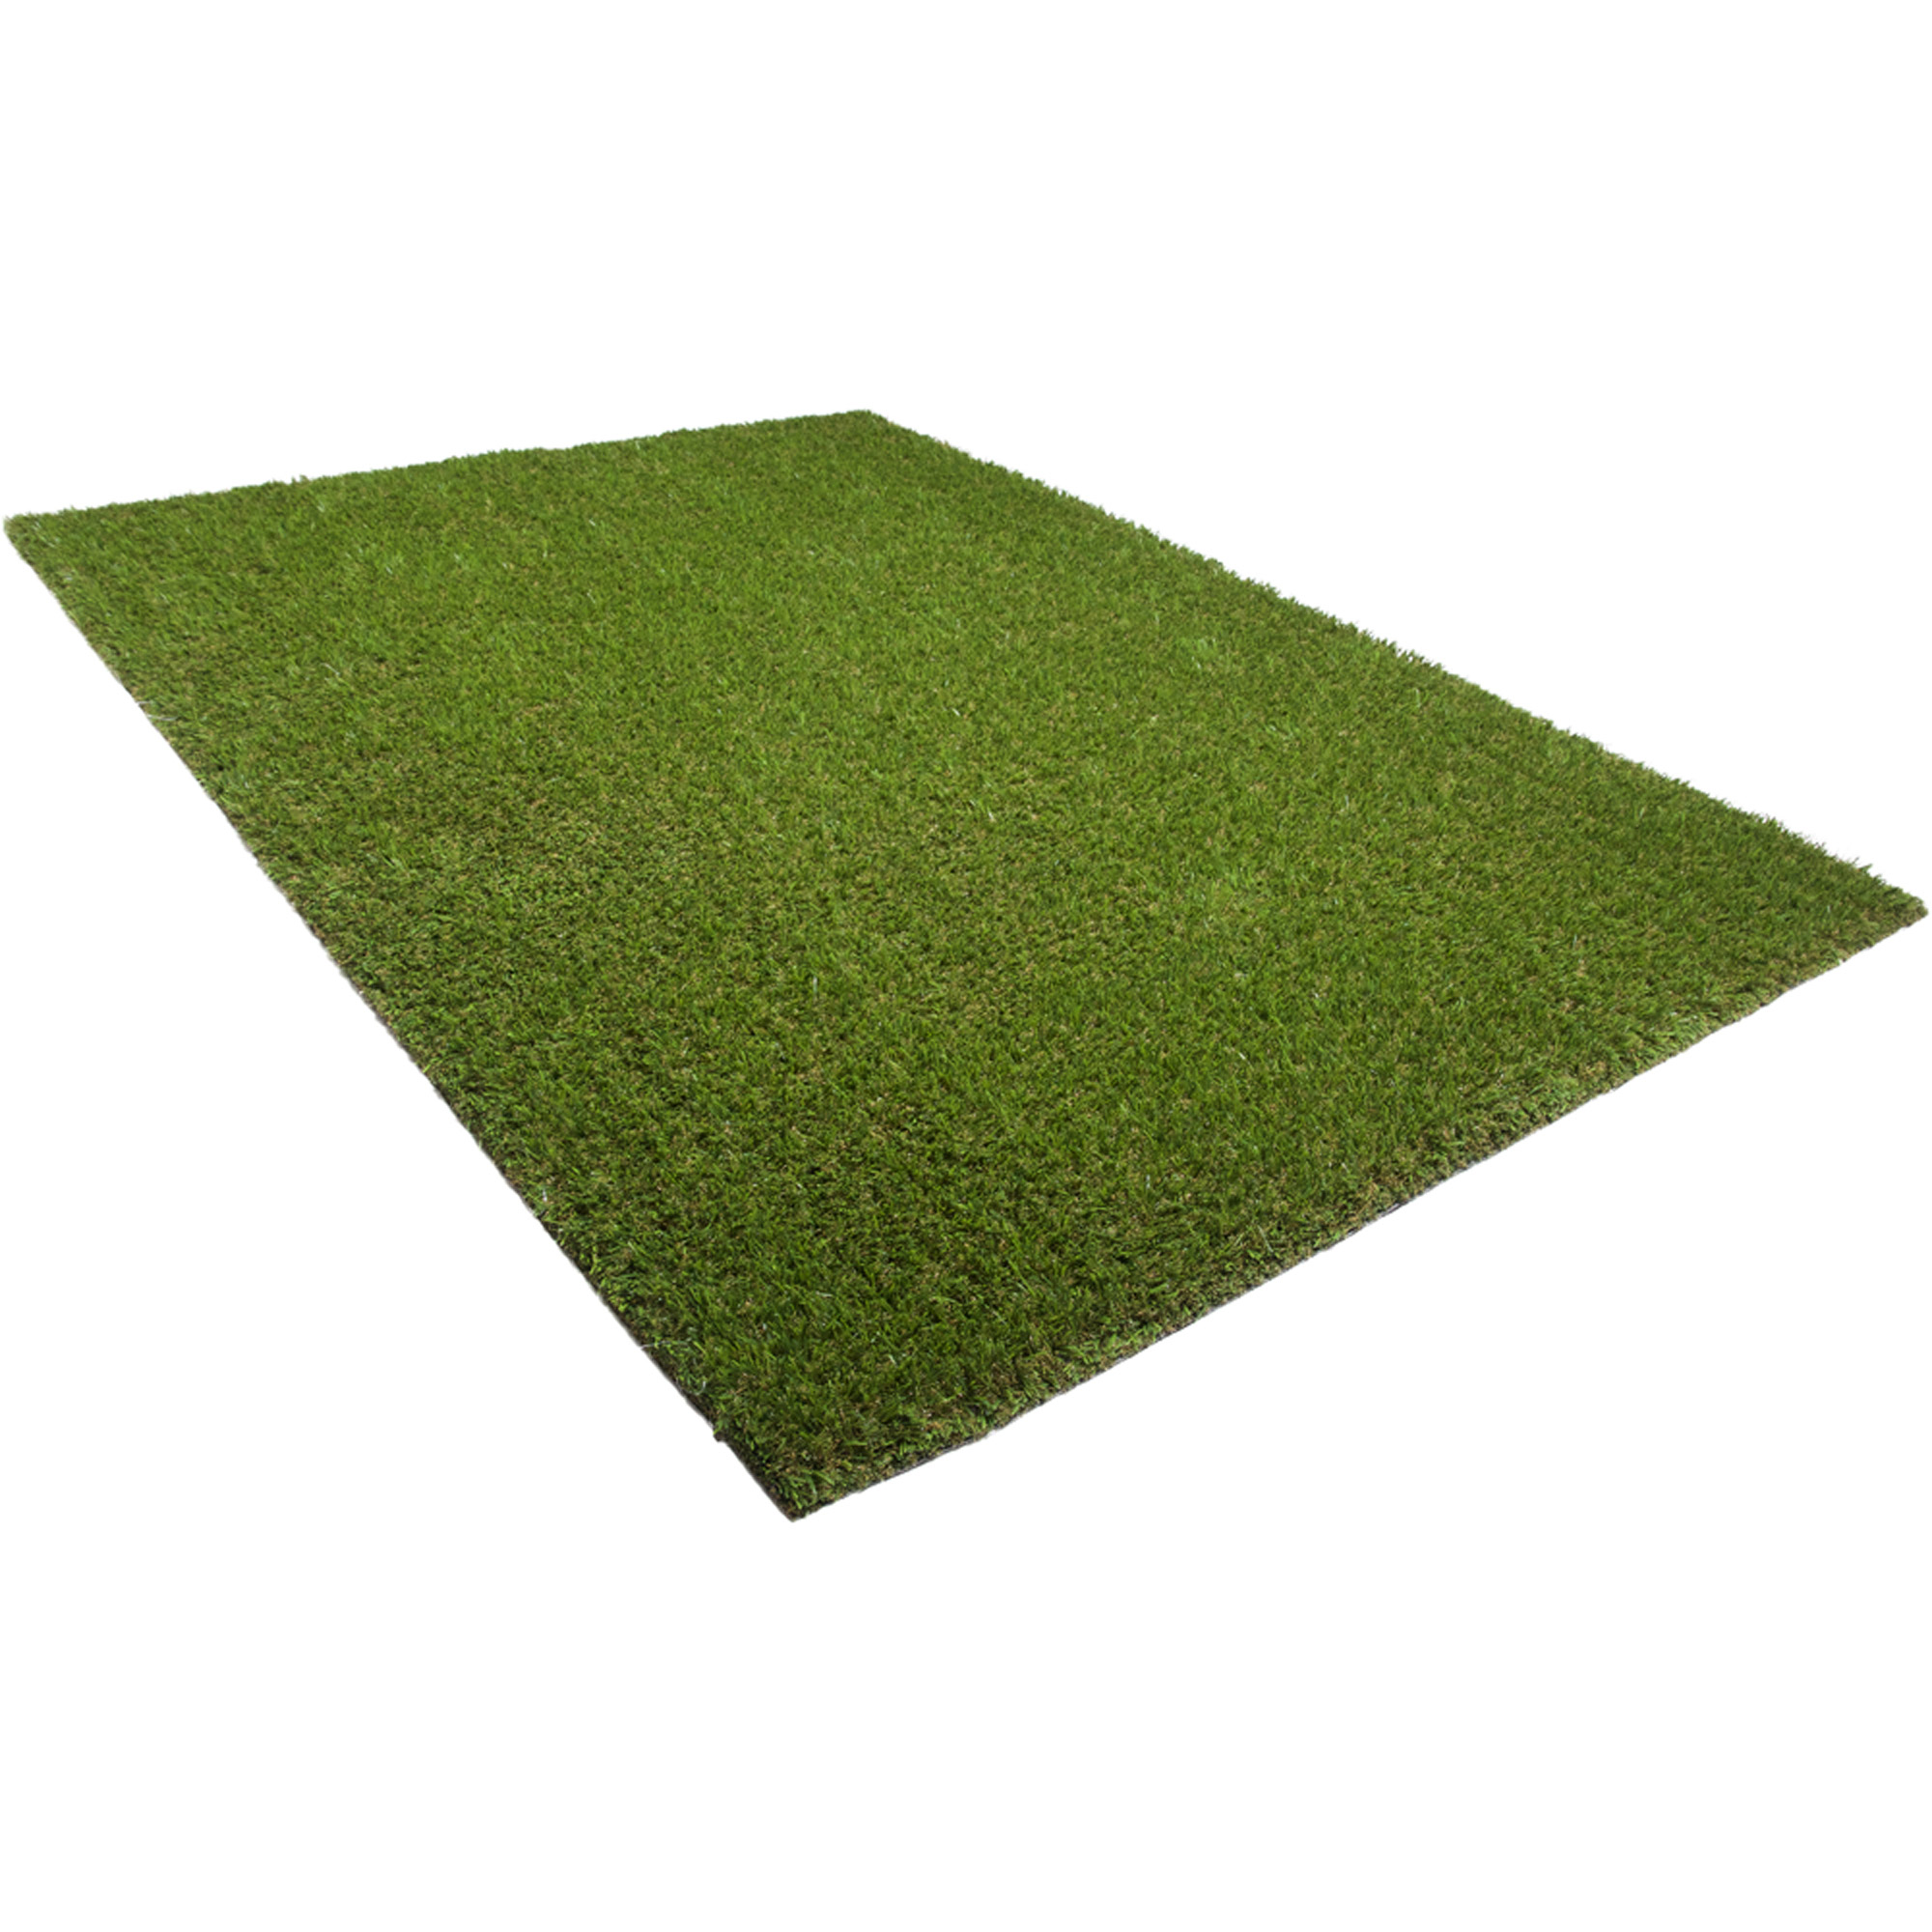 Putting Green Carpet Walmart Carpet Vidalondon